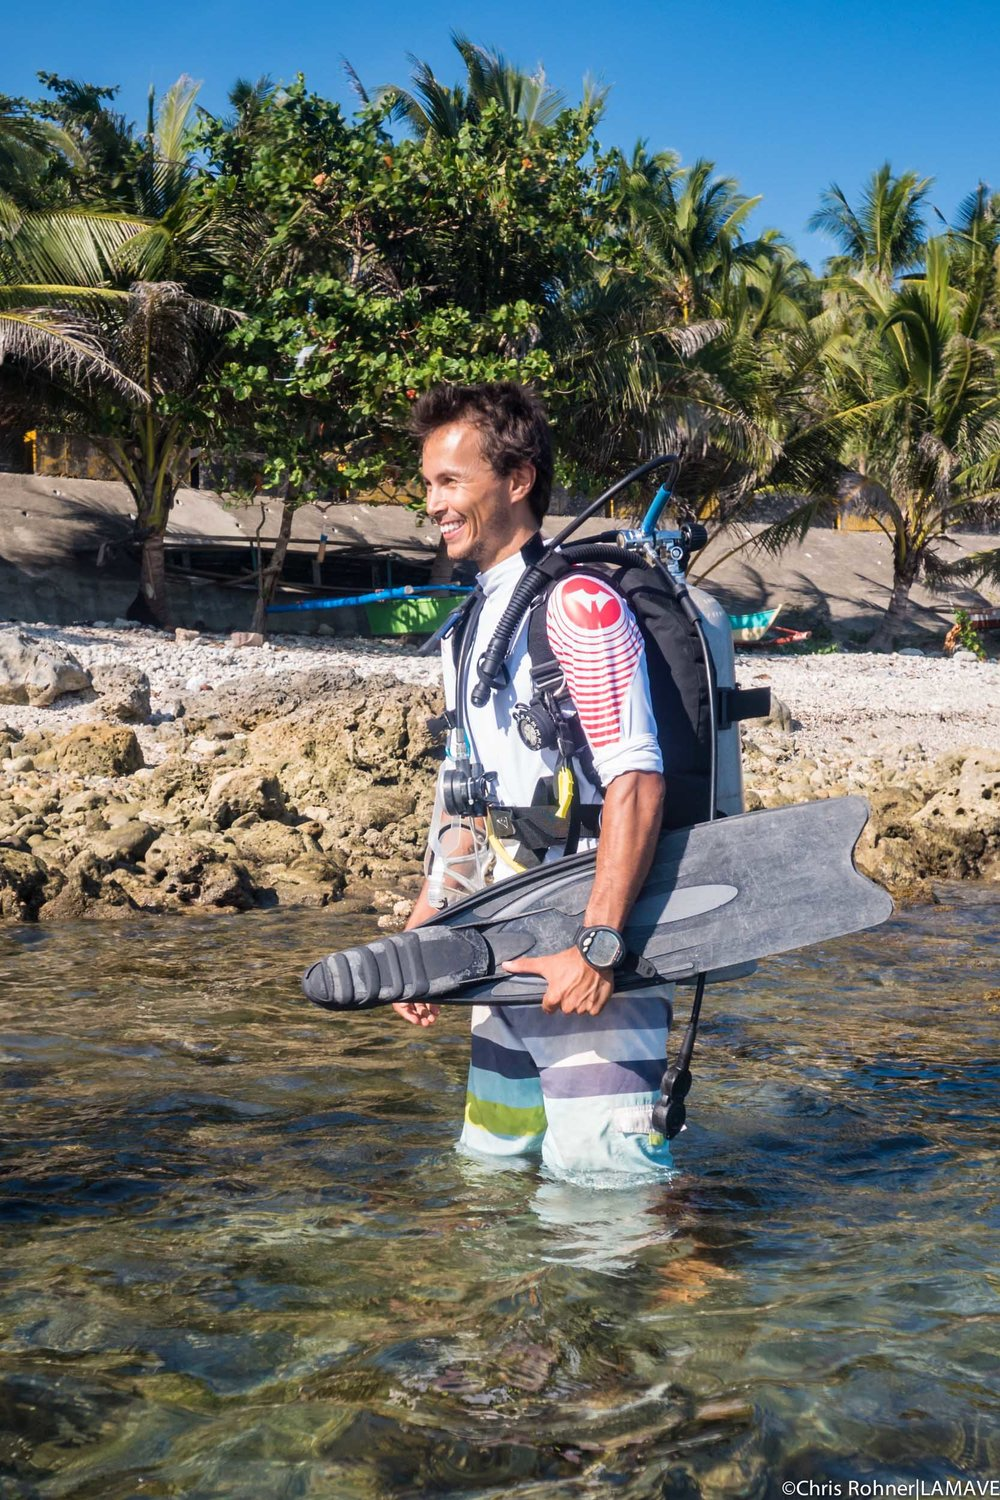 Josh Rambaniharison Project Leader: Ray Fisheries Josh grew up in the French Alps, though his roots are in Madagascar. A biology graduate with a passion for diving, Josh went on to study a masters in Sustainable Development, which included a year at the University of Reunion Island studying Biodiversity and Tropical Ecosystems. Joshs' main interest is elasmobranchs; he leads LAMAVE research on Mobulidae in the Bohol Sea. MSc. in Biodiversity and Sustainable Development, University of Perpignan, France BSc. Biology of Organisms and Populations, University of Lyon, France